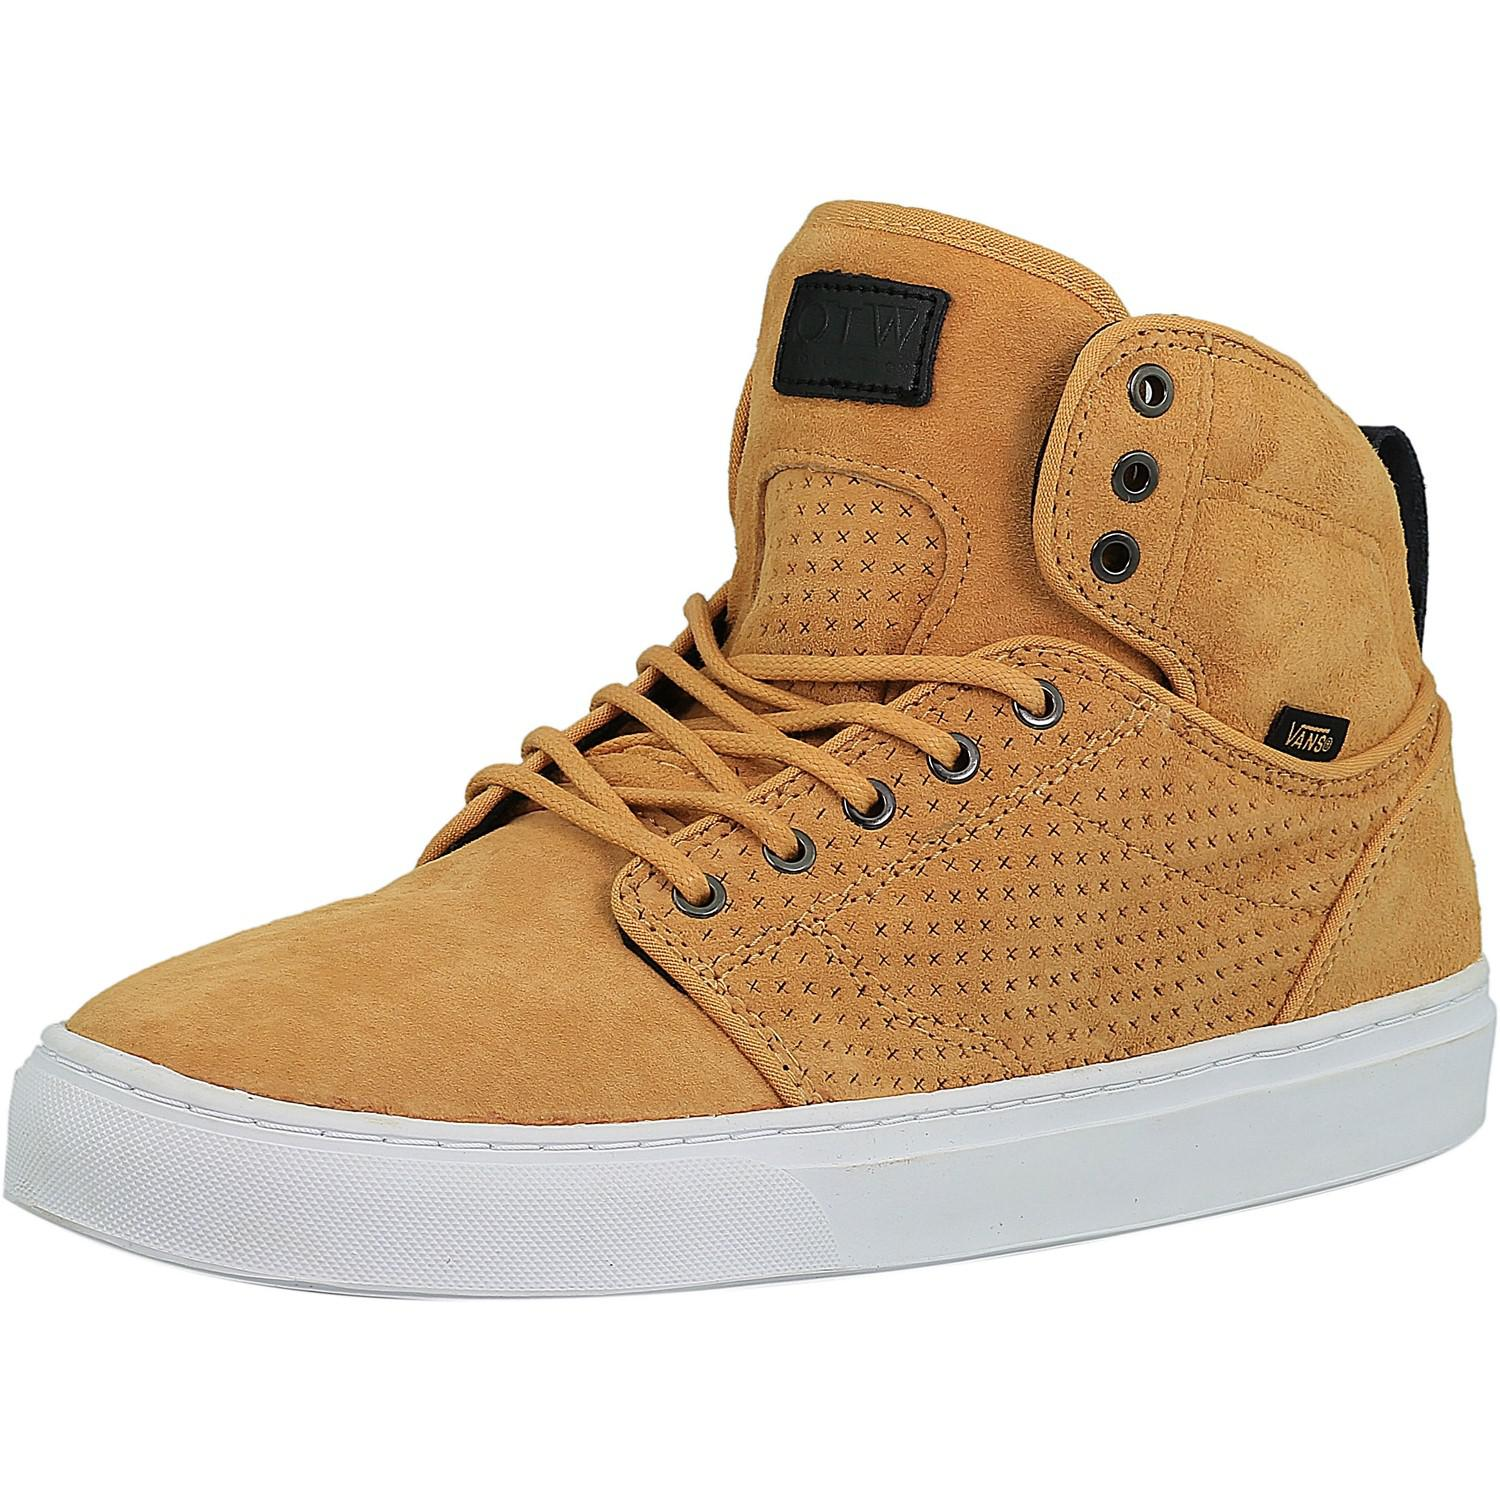 c61547ba6d Lyst - Vans Alomar Luxe Reverse Tan   White Ankle-high Leather ...